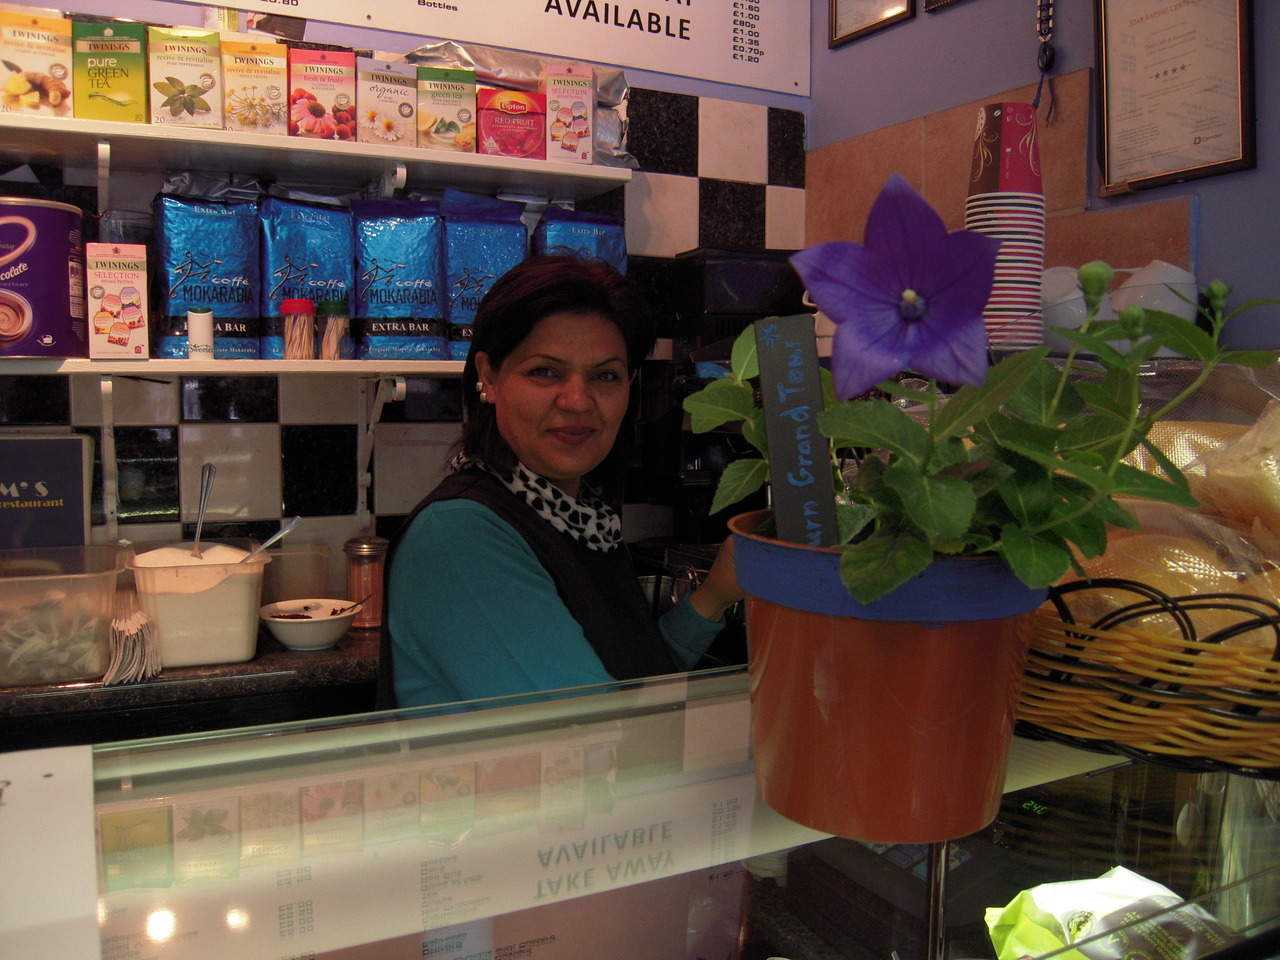 The second Blue Flower cooperator!  Tim's Cafe 5 Quex Road,London, NW6 4PP  In the photo:  Fawzia  Manager's name is Rosey  Rosey said :  I love Kilburn. I've lived here since 1996 and had the business for ten years now. I know the local people and they are all really good people, at first it can be hard to know them but once you start to chat you see they are all such good people. It's a good community here. On Monday through to Friday I have my local regulars come in, on Saturdays I get people from all over London who come for the shopping on Kilburn High Rd and on Sundays people come after Mass from the two local churches.